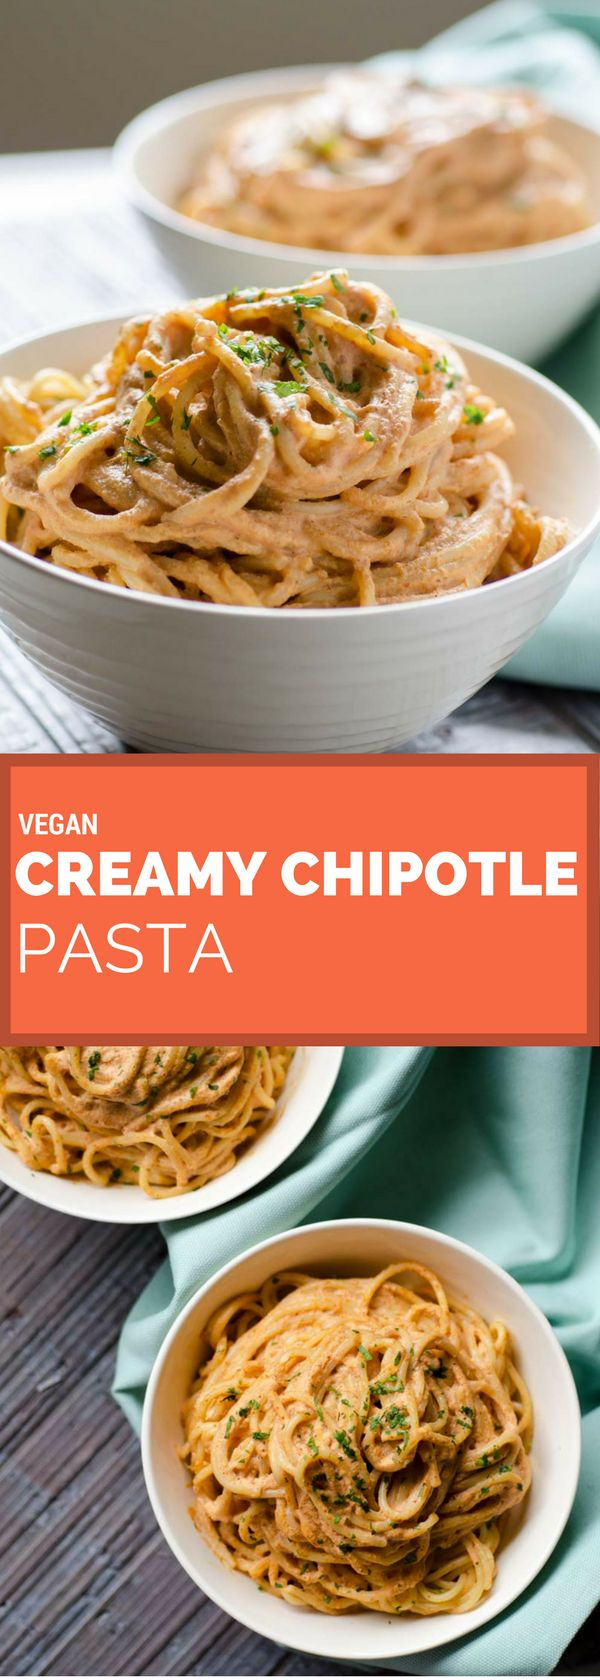 This vegan creamy chipotle pasta is so easy to make. The smokiness of the…